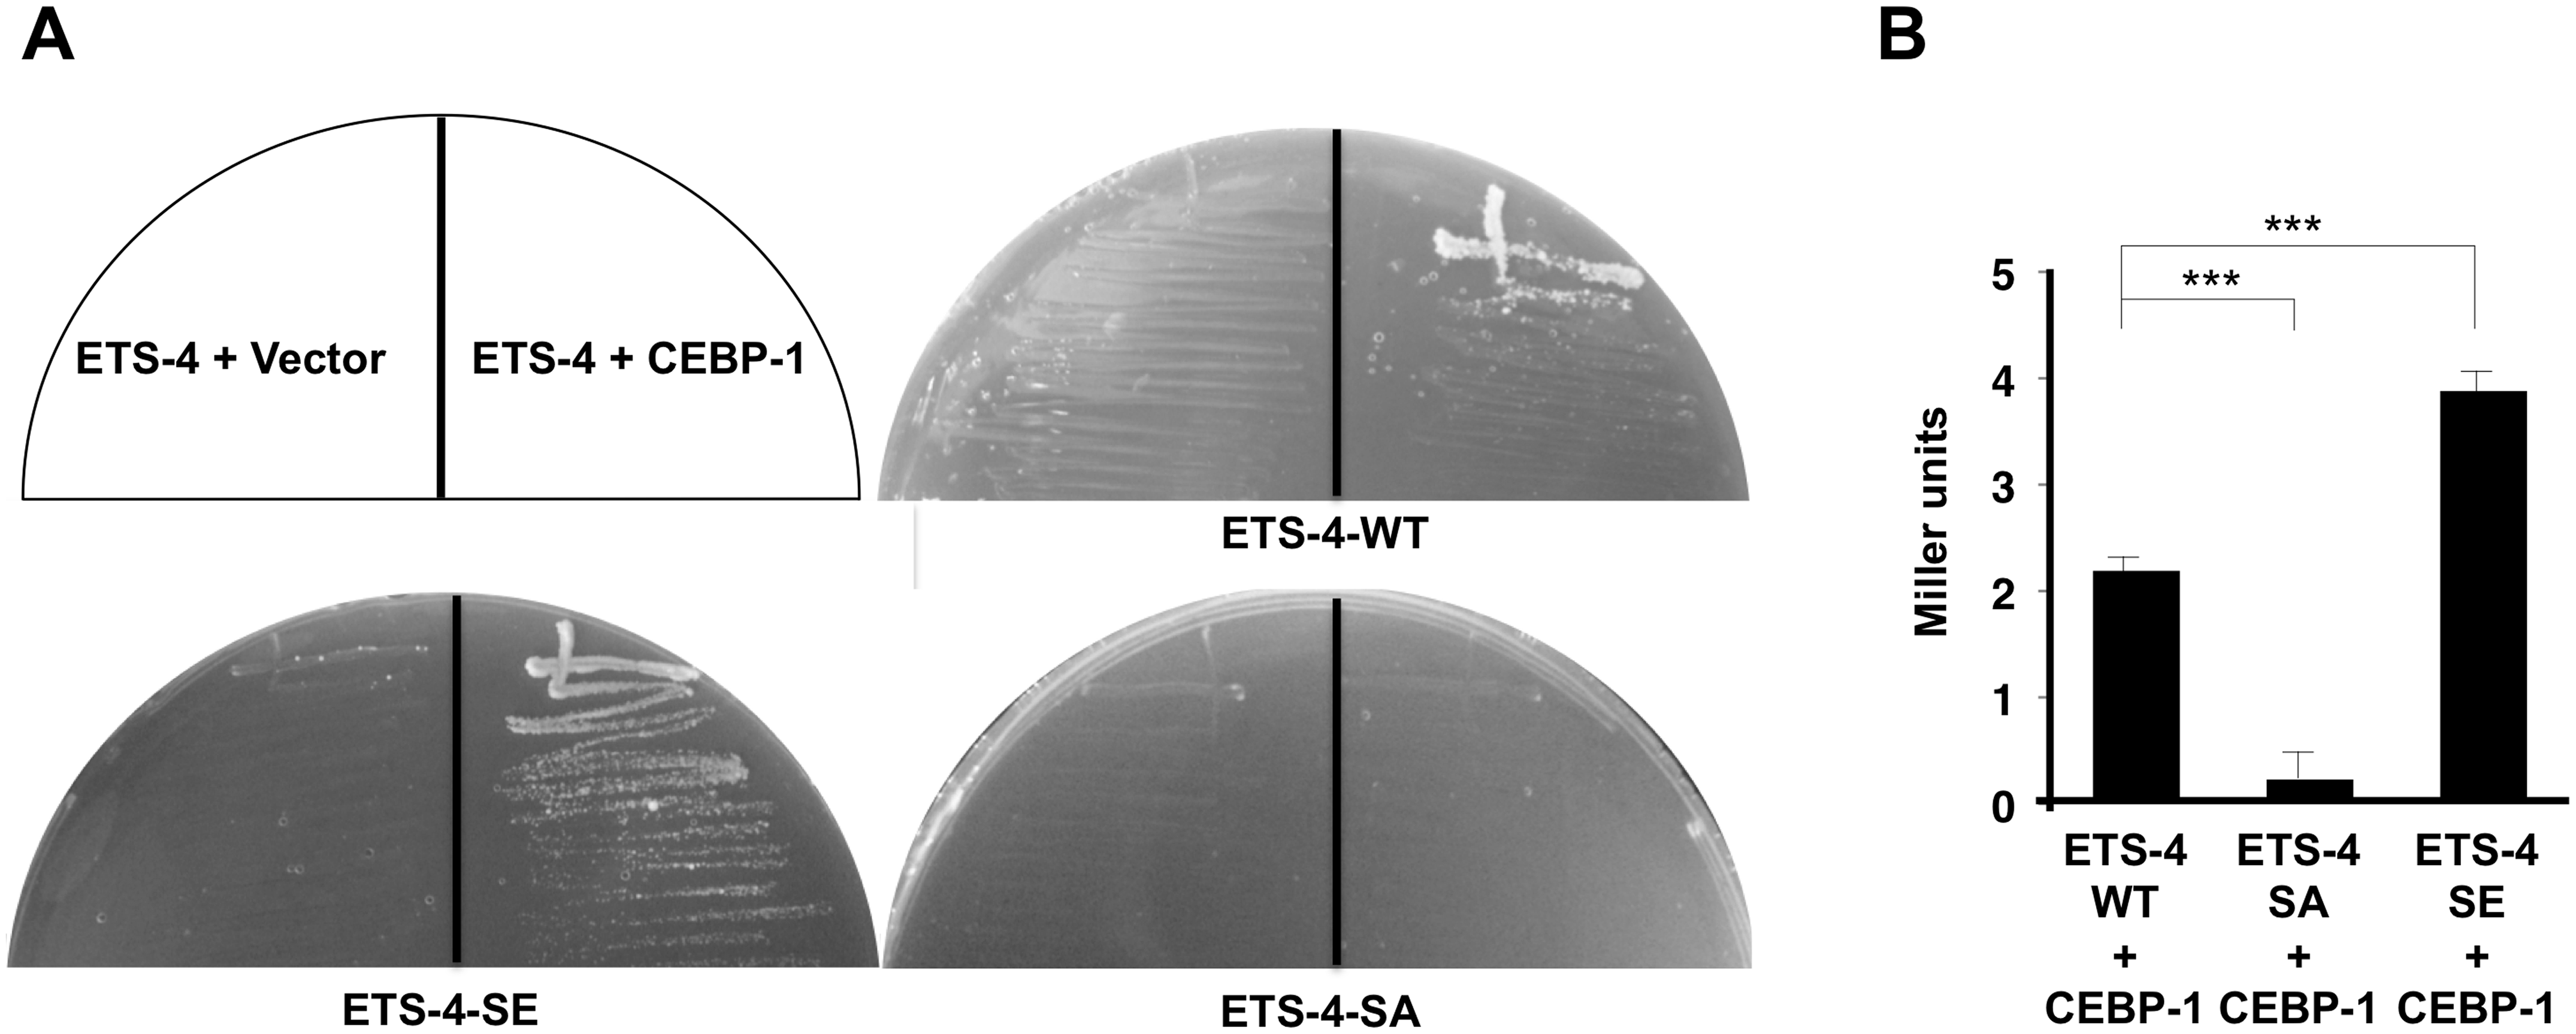 Interaction of ETS-4 with CEBP-1 by yeast two-hybrid assays.